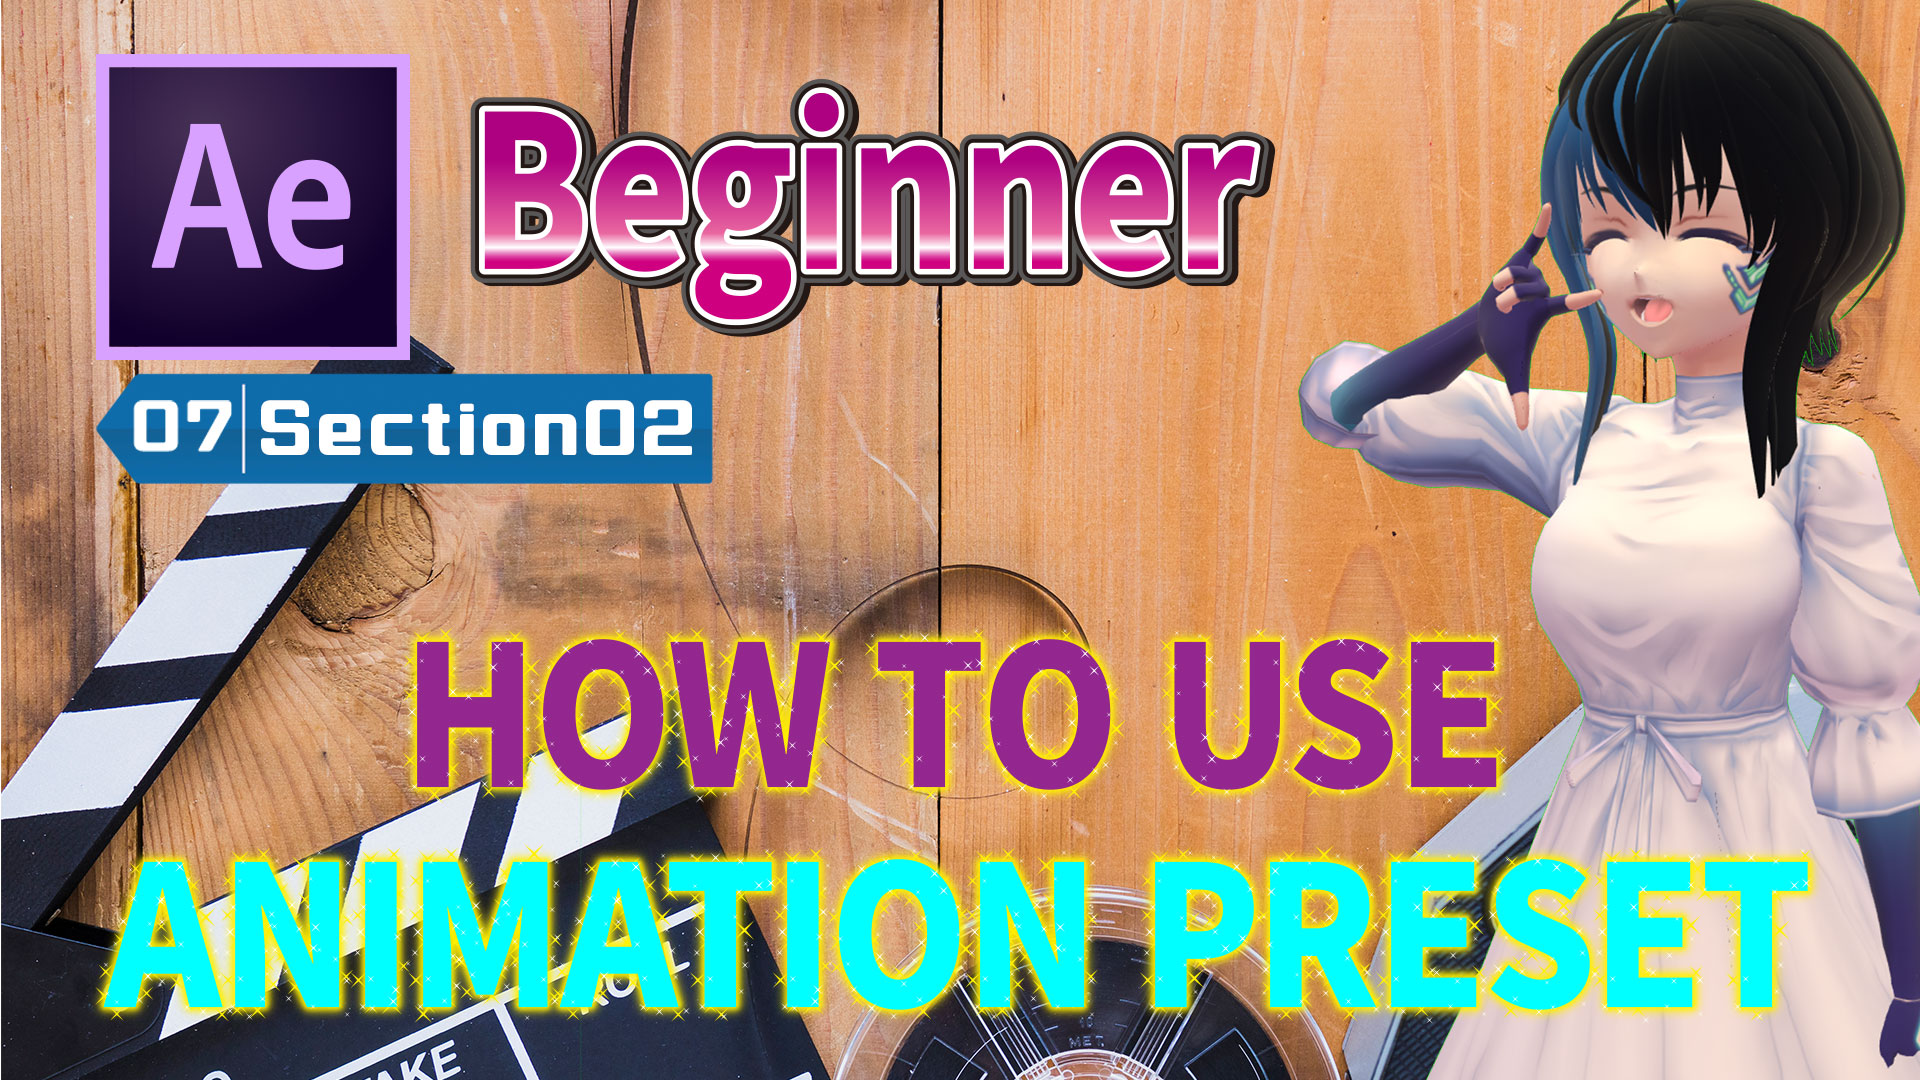 HOW TO USE ANIMATION PRESET